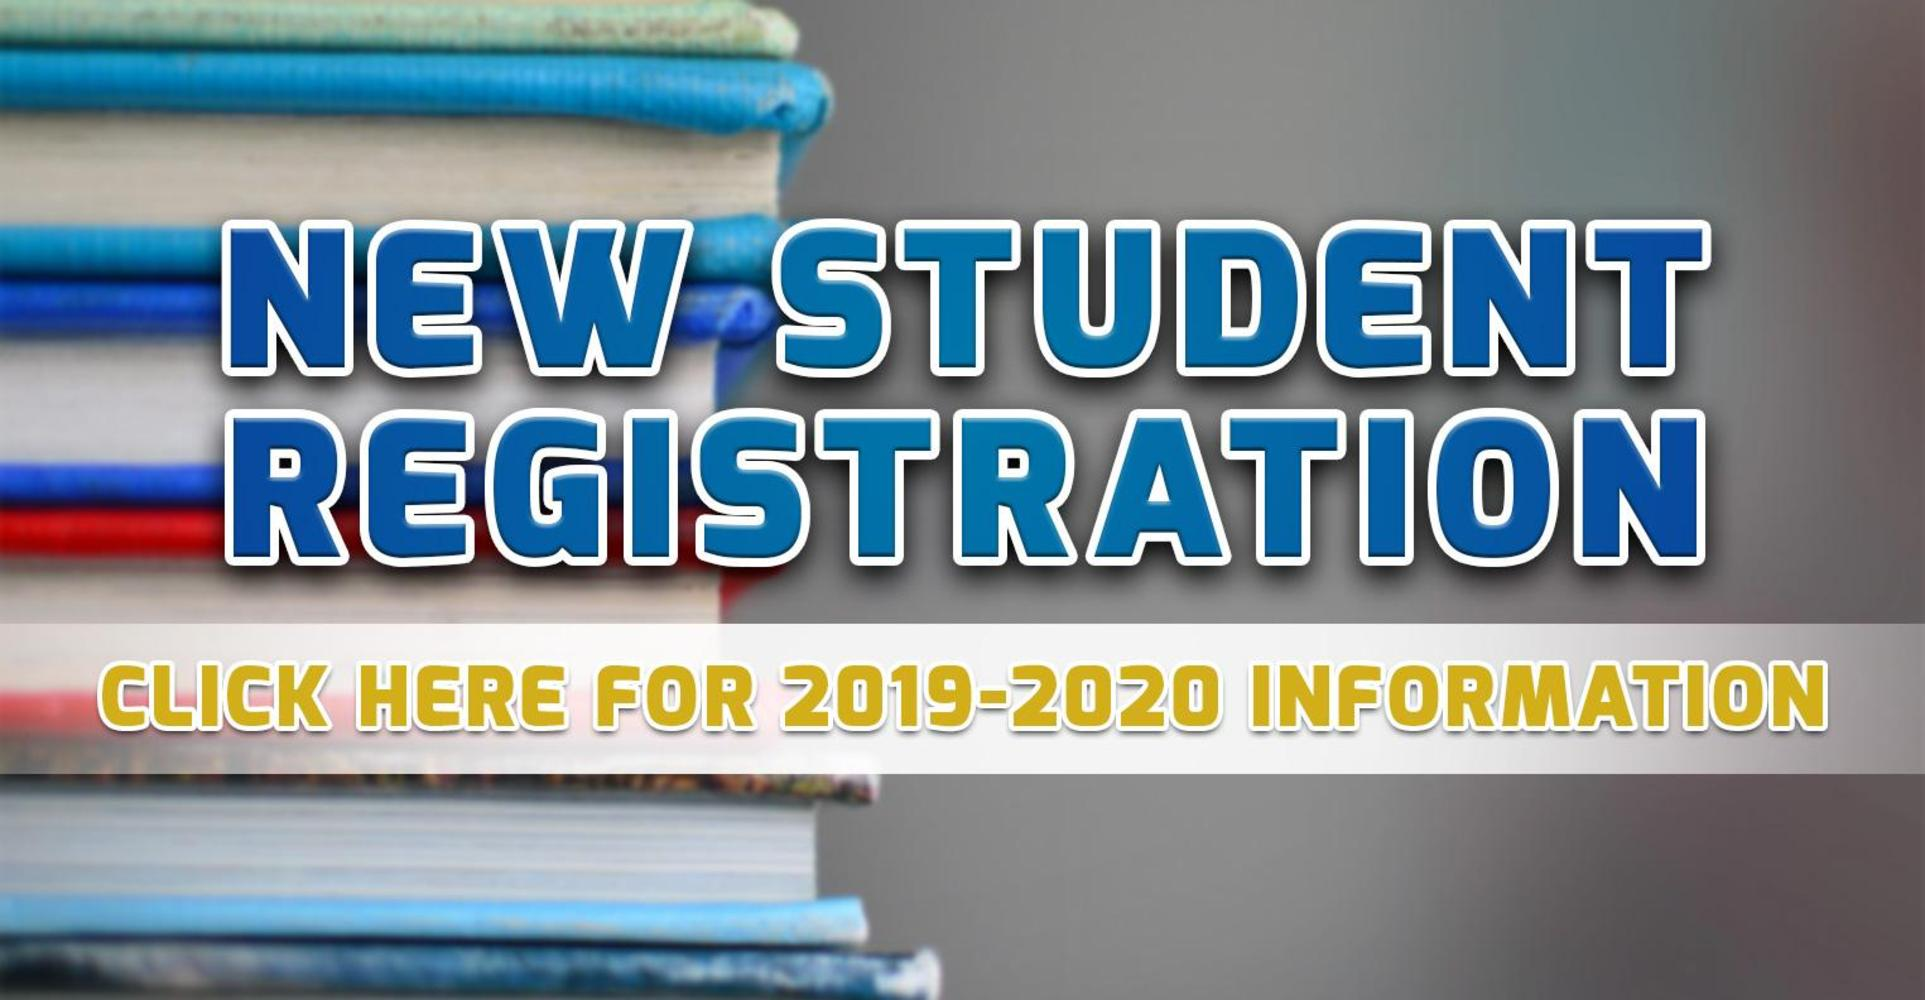 New Student Registration Information (2019-2020)